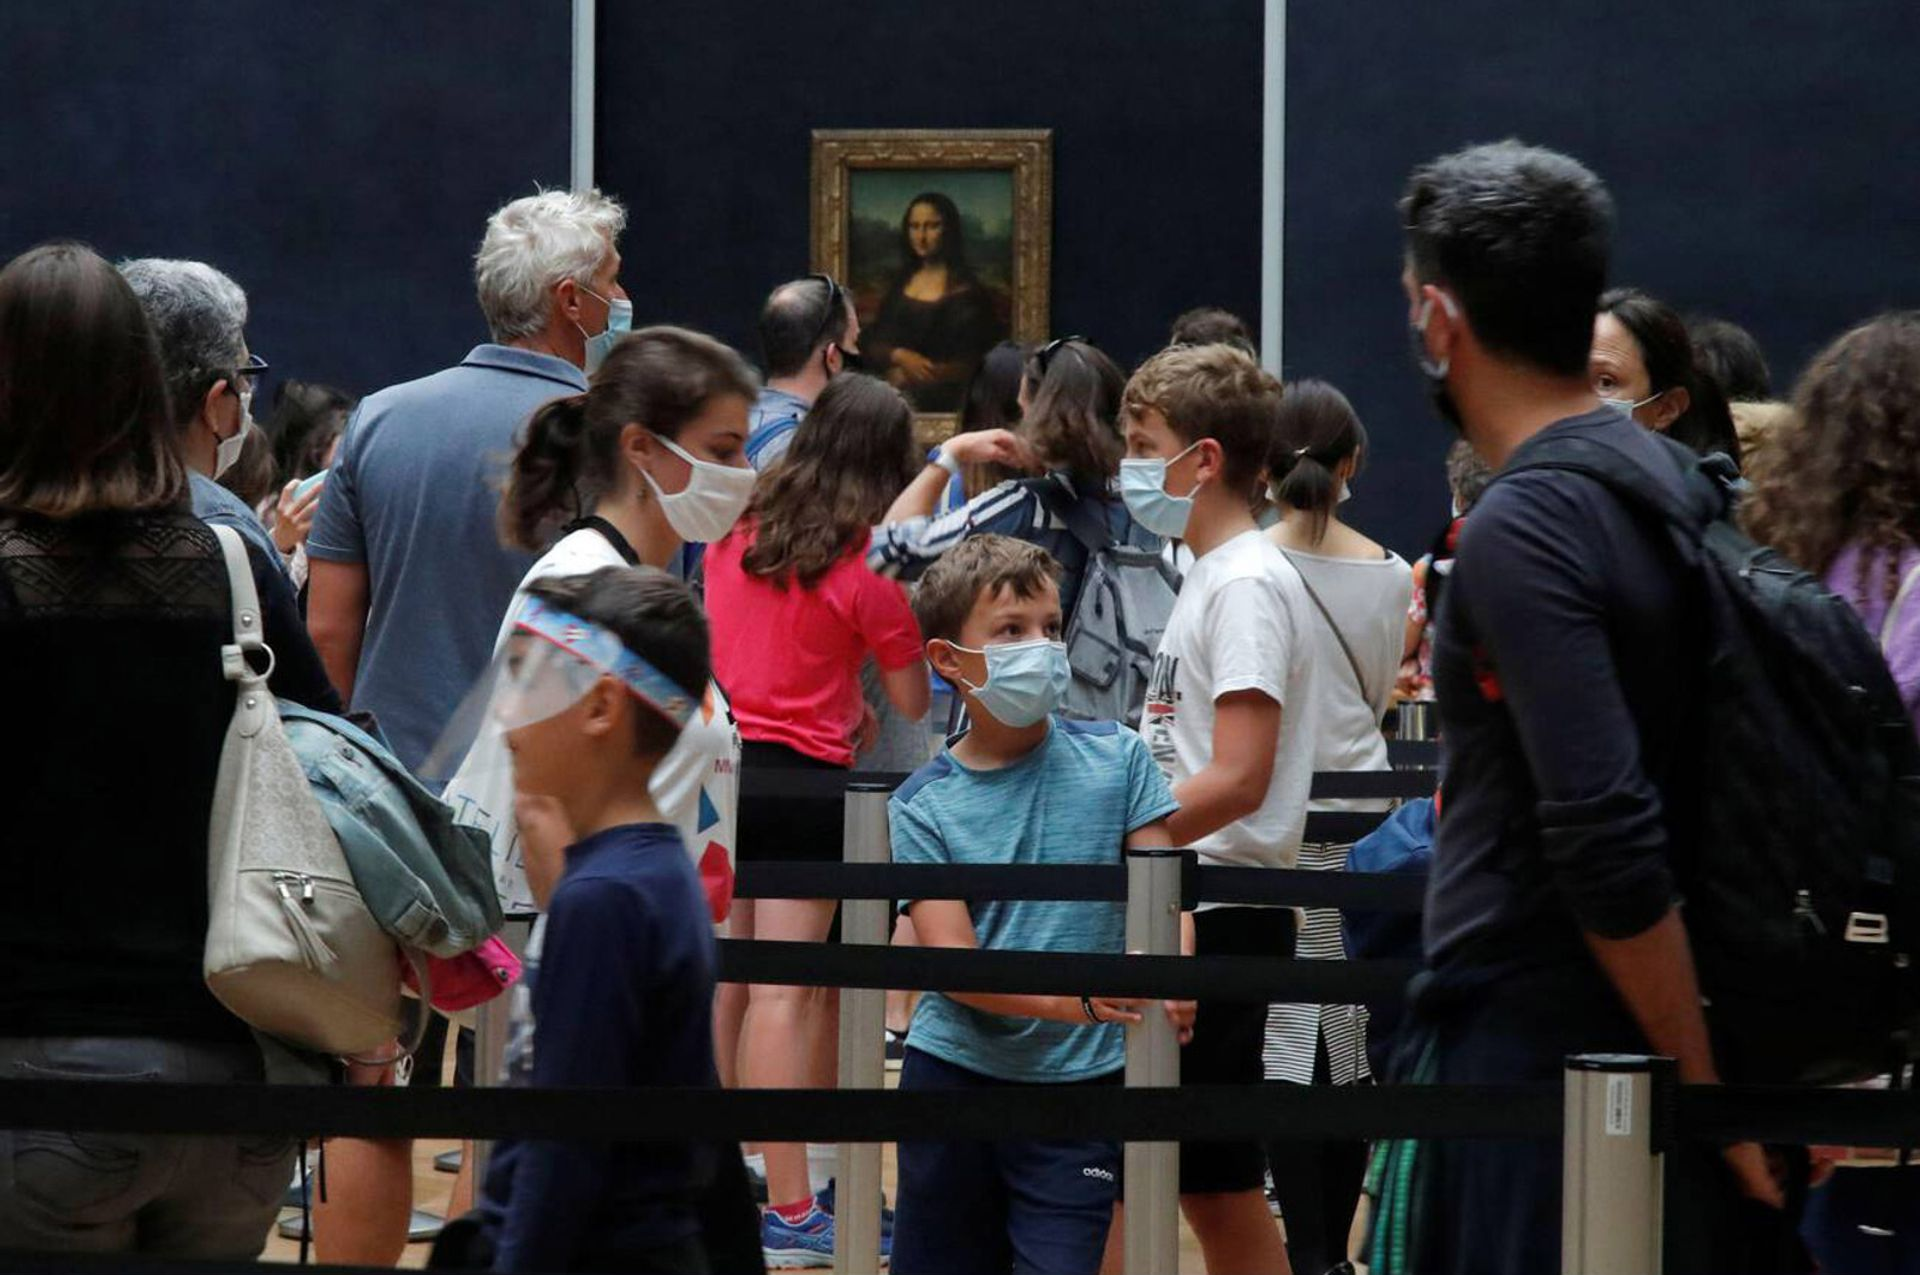 The Musée du Louvre in Paris was the most visited museum in 2020, with its blockbuster Leonardo exhibition attracting more than 10,000 a day. Overall, 2.7 million people visited the museum—72% fewer than in 2019 Reuters/Alamy Stock Photo